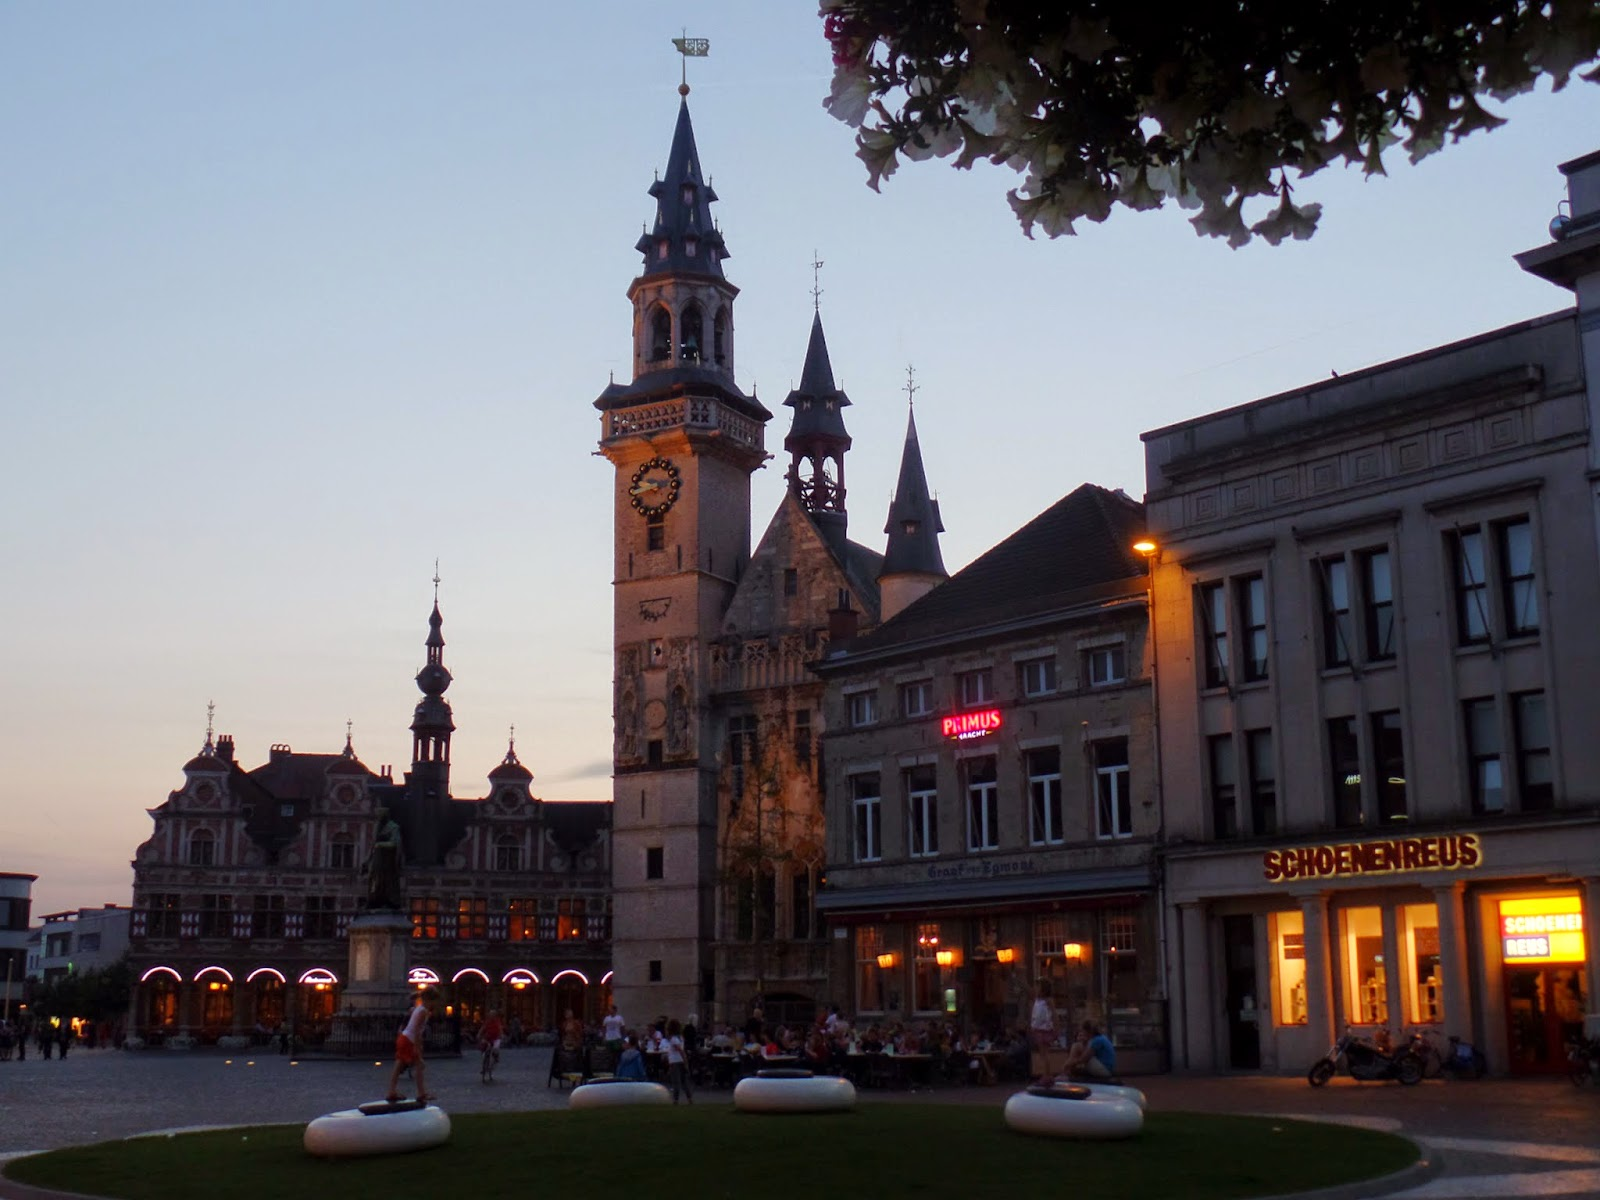 The town square at sunset